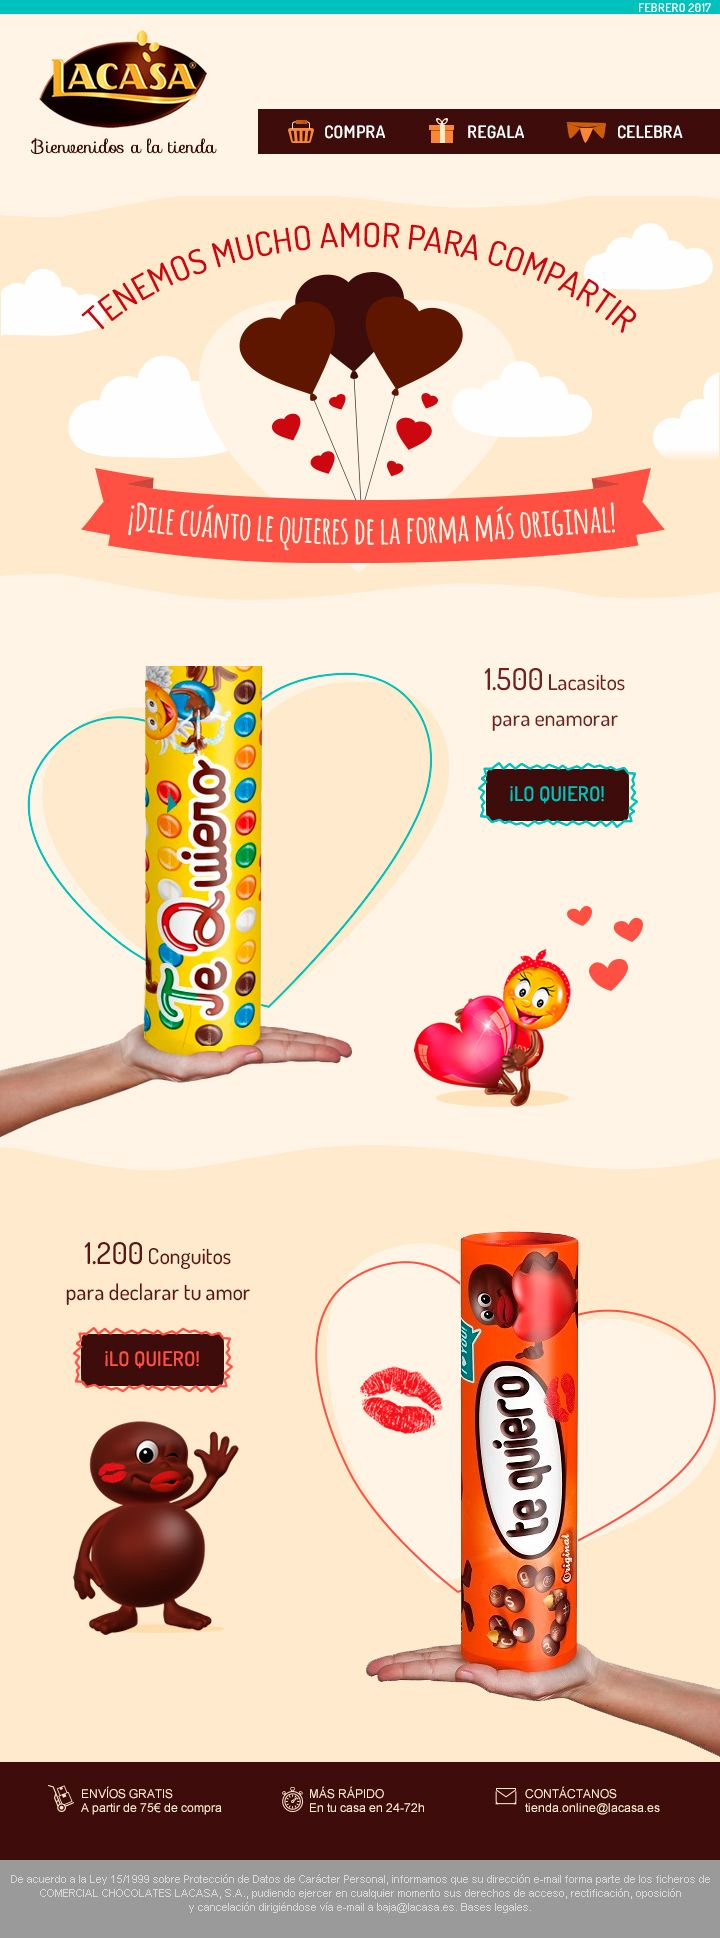 #CHOCOLATES #LACASA · Special Newsletter for Valentines Day, promoting personalisable products · February 2017 · http://snip.ly/wsa1i